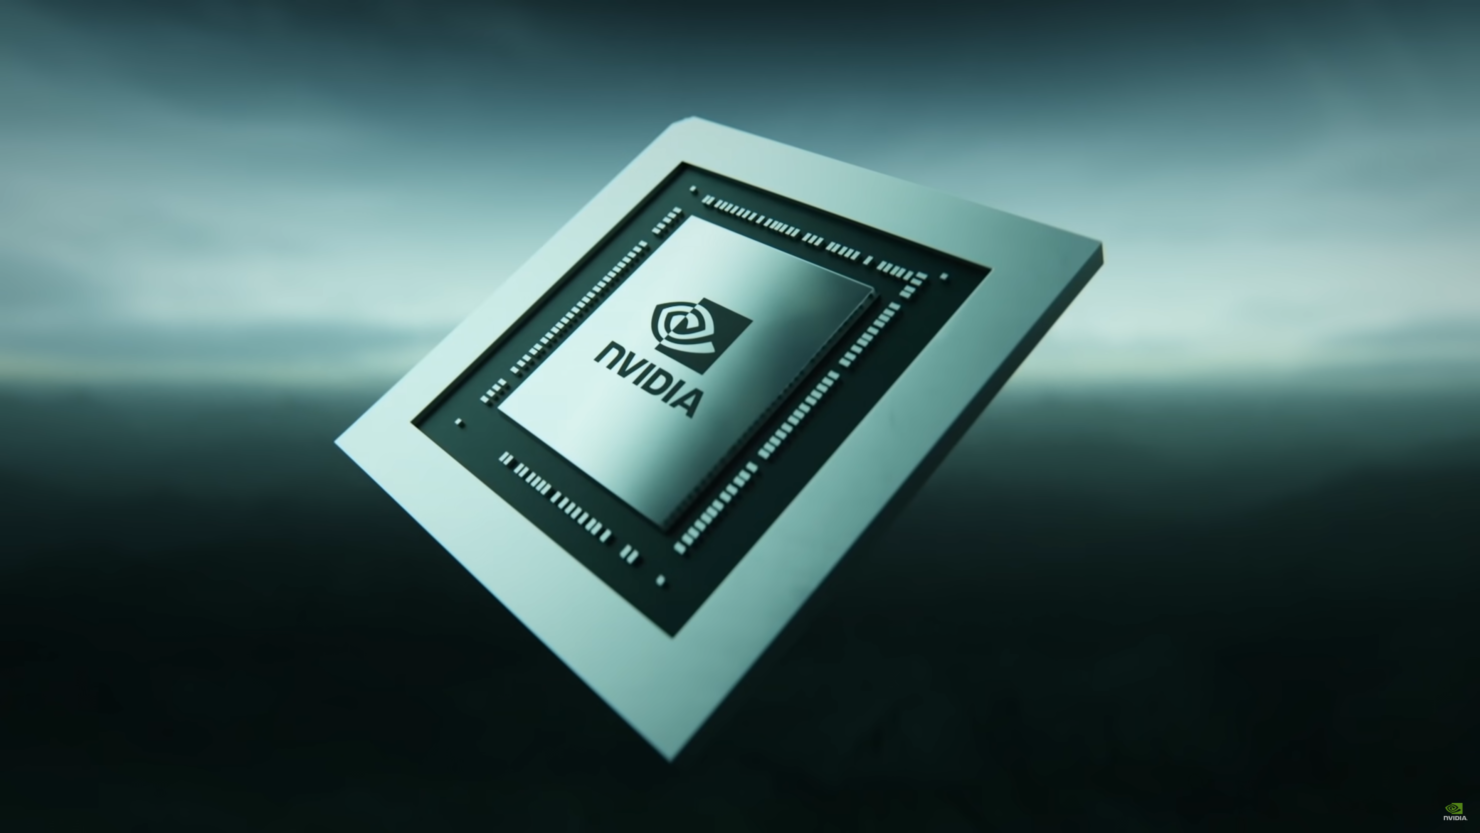 nvidia-geforce-rtx-3080-ti-&-rest-of-the-geforce-rtx-30-lineup-to-get-revised-ampere-gpus-to-tackle-cryptocurrency-mining